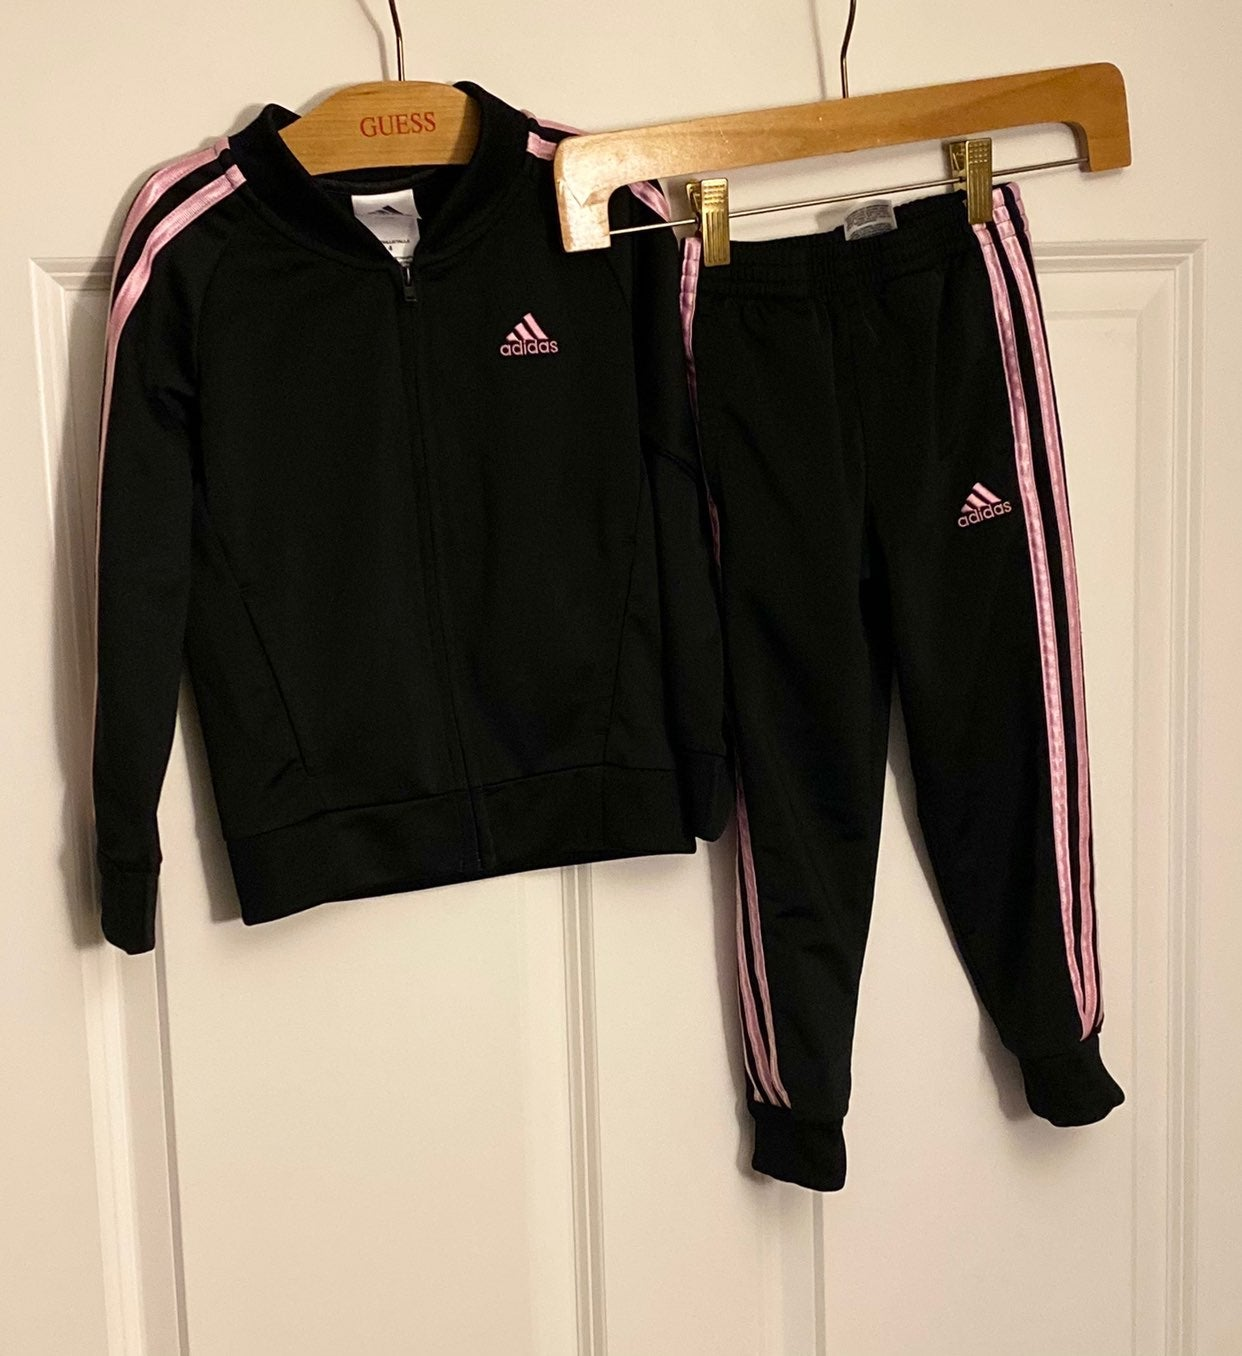 Adidas Track Suit size 4